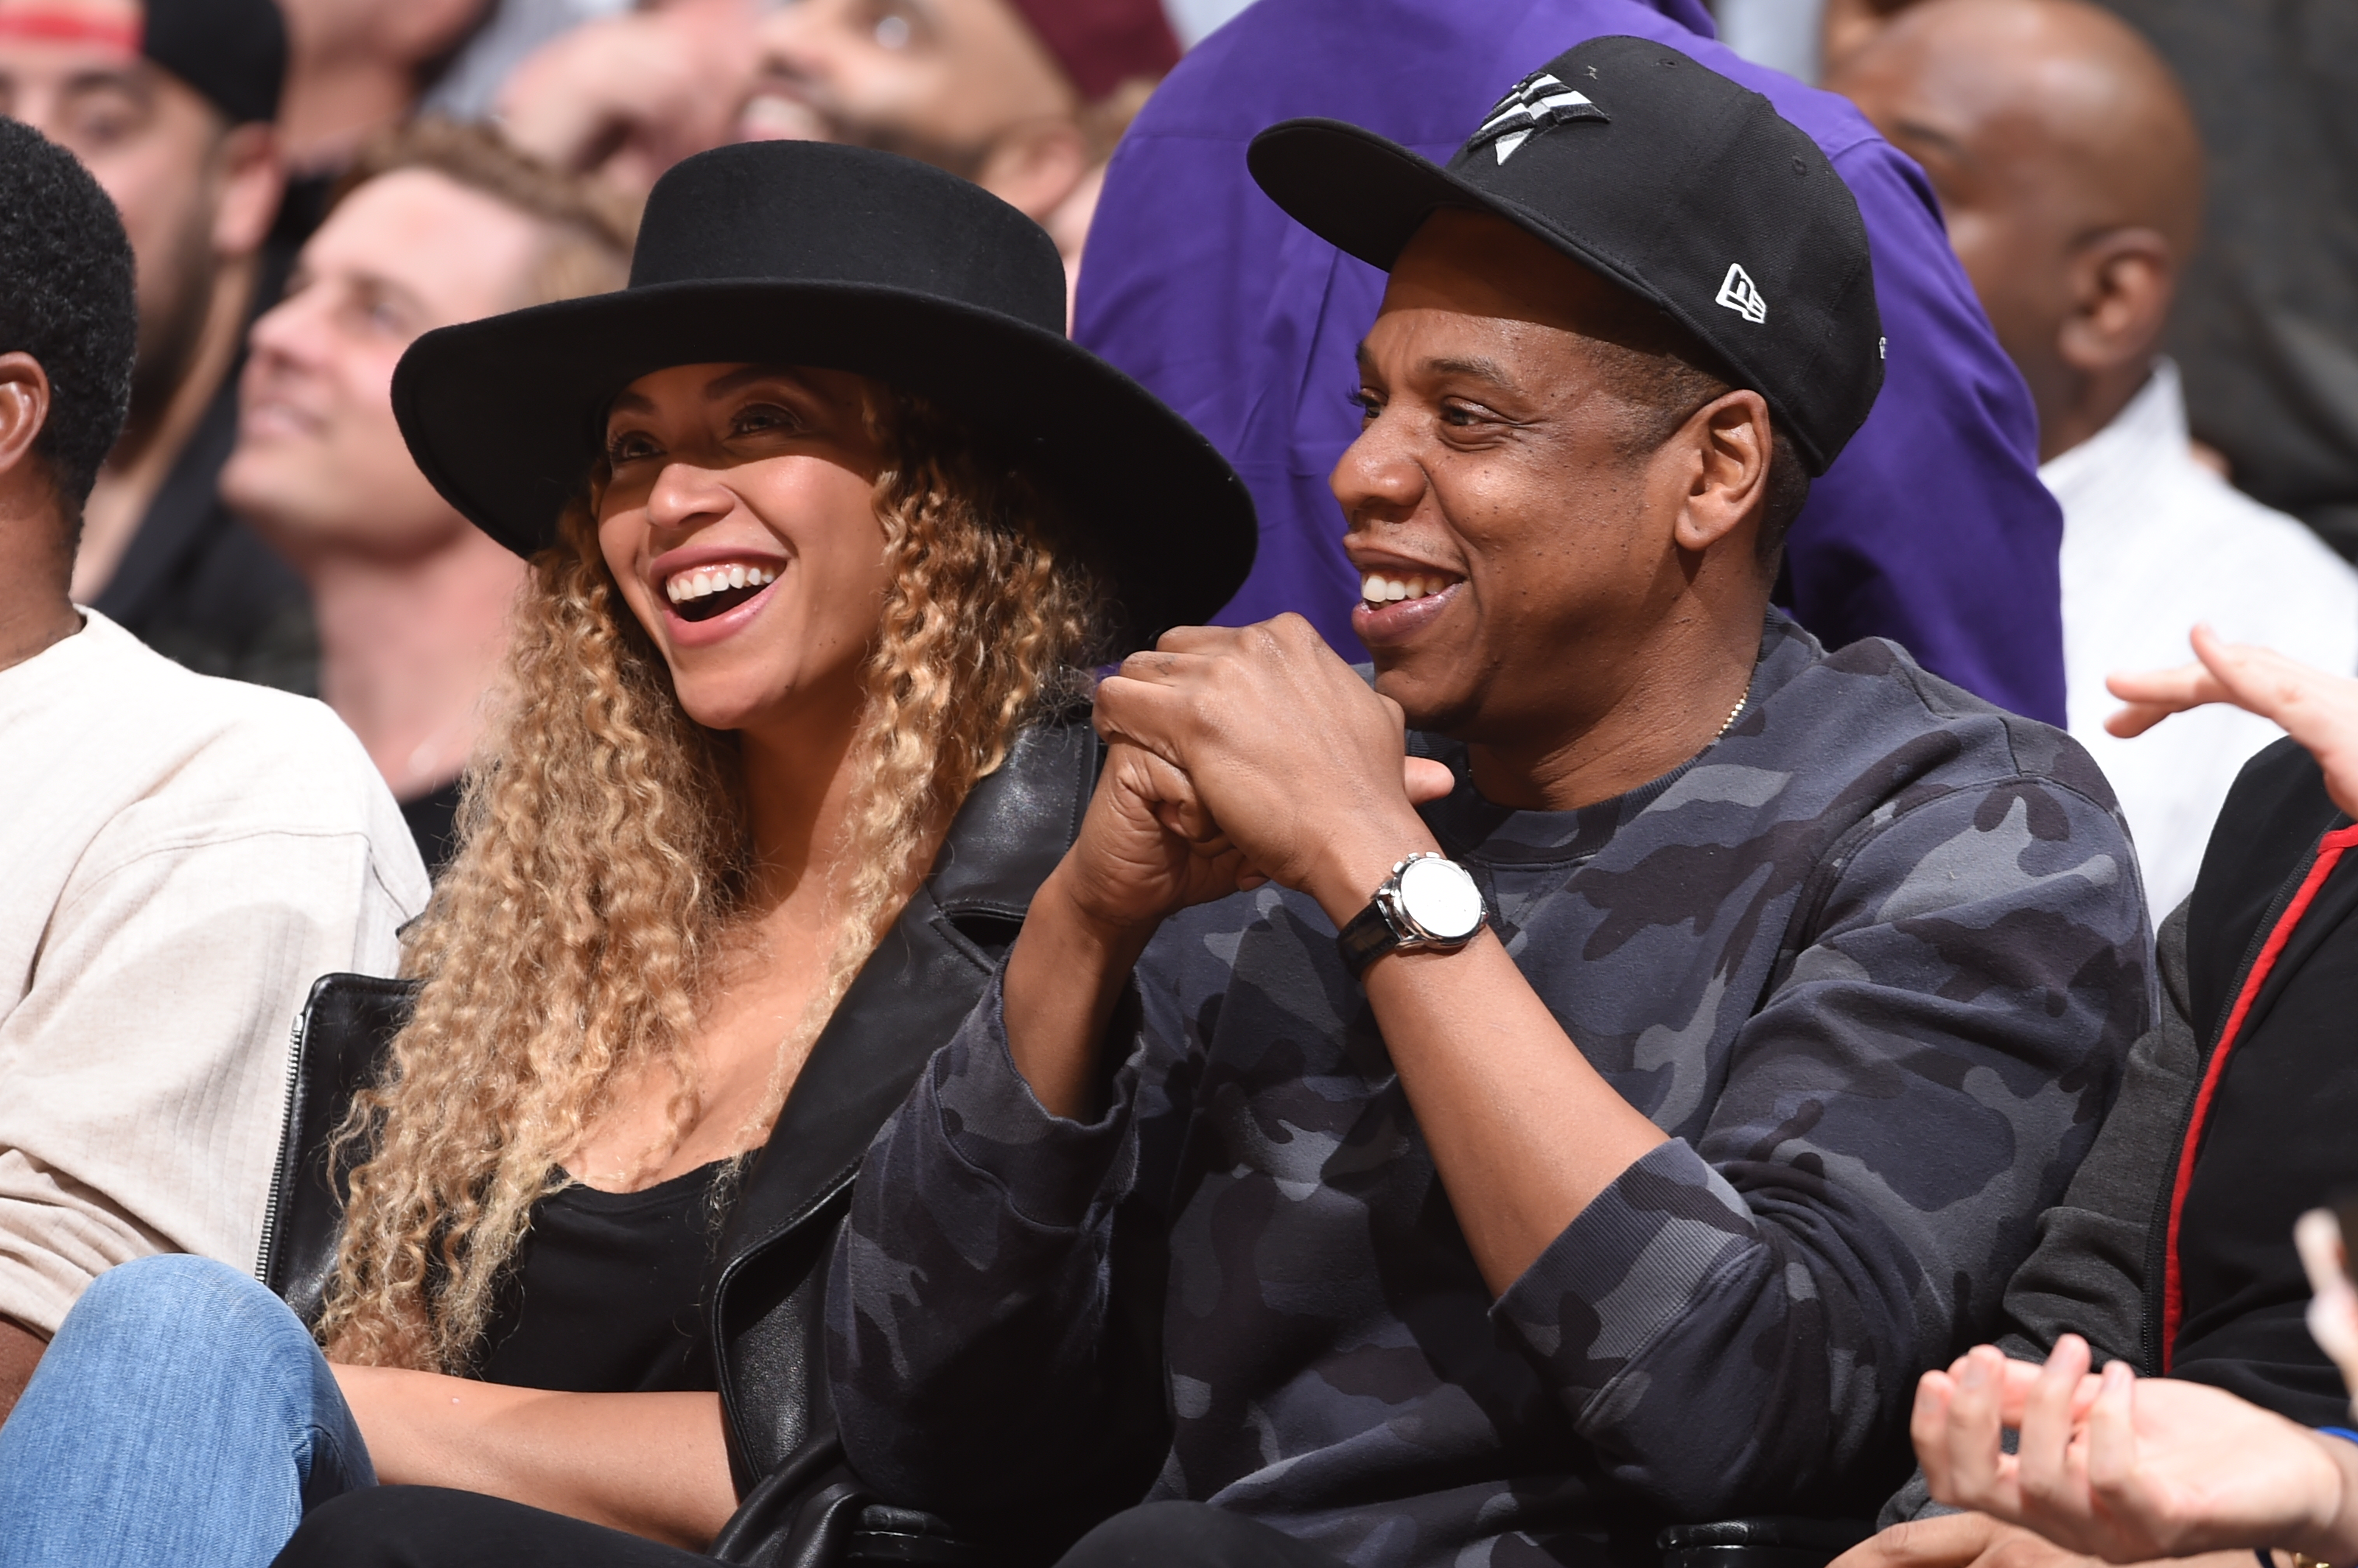 Singer, Beyonce and Rapper, Jay-Z attend the Oklahoma City Thunder game against the Los Angeles Clippers on March 2, 2016 at STAPLES Center in Los Angeles, California.